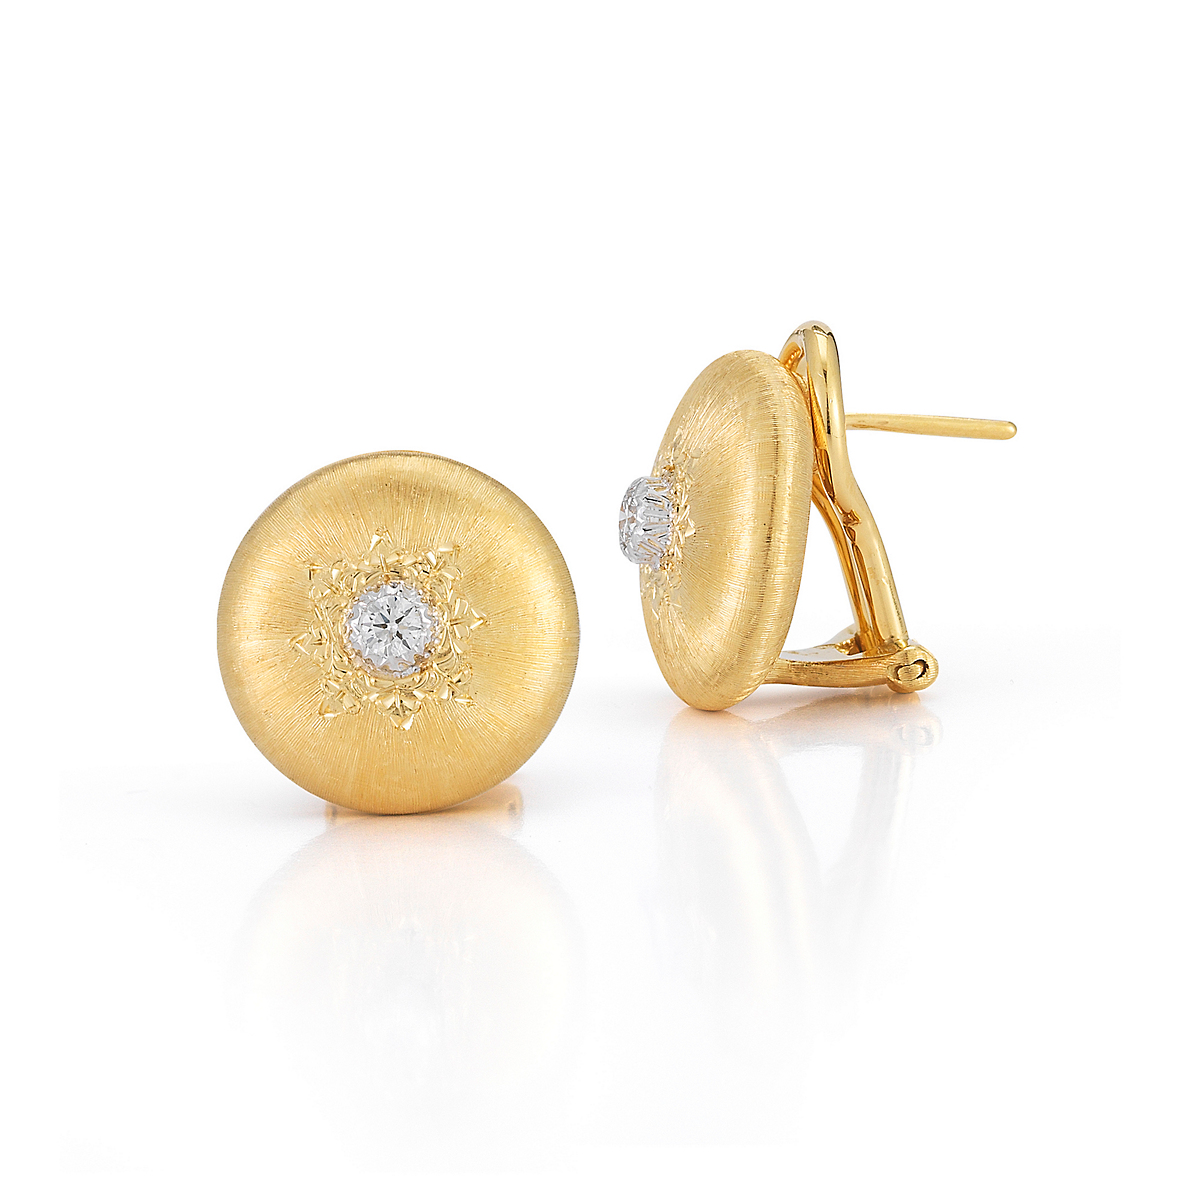 Buccellati Classica Button Earrings